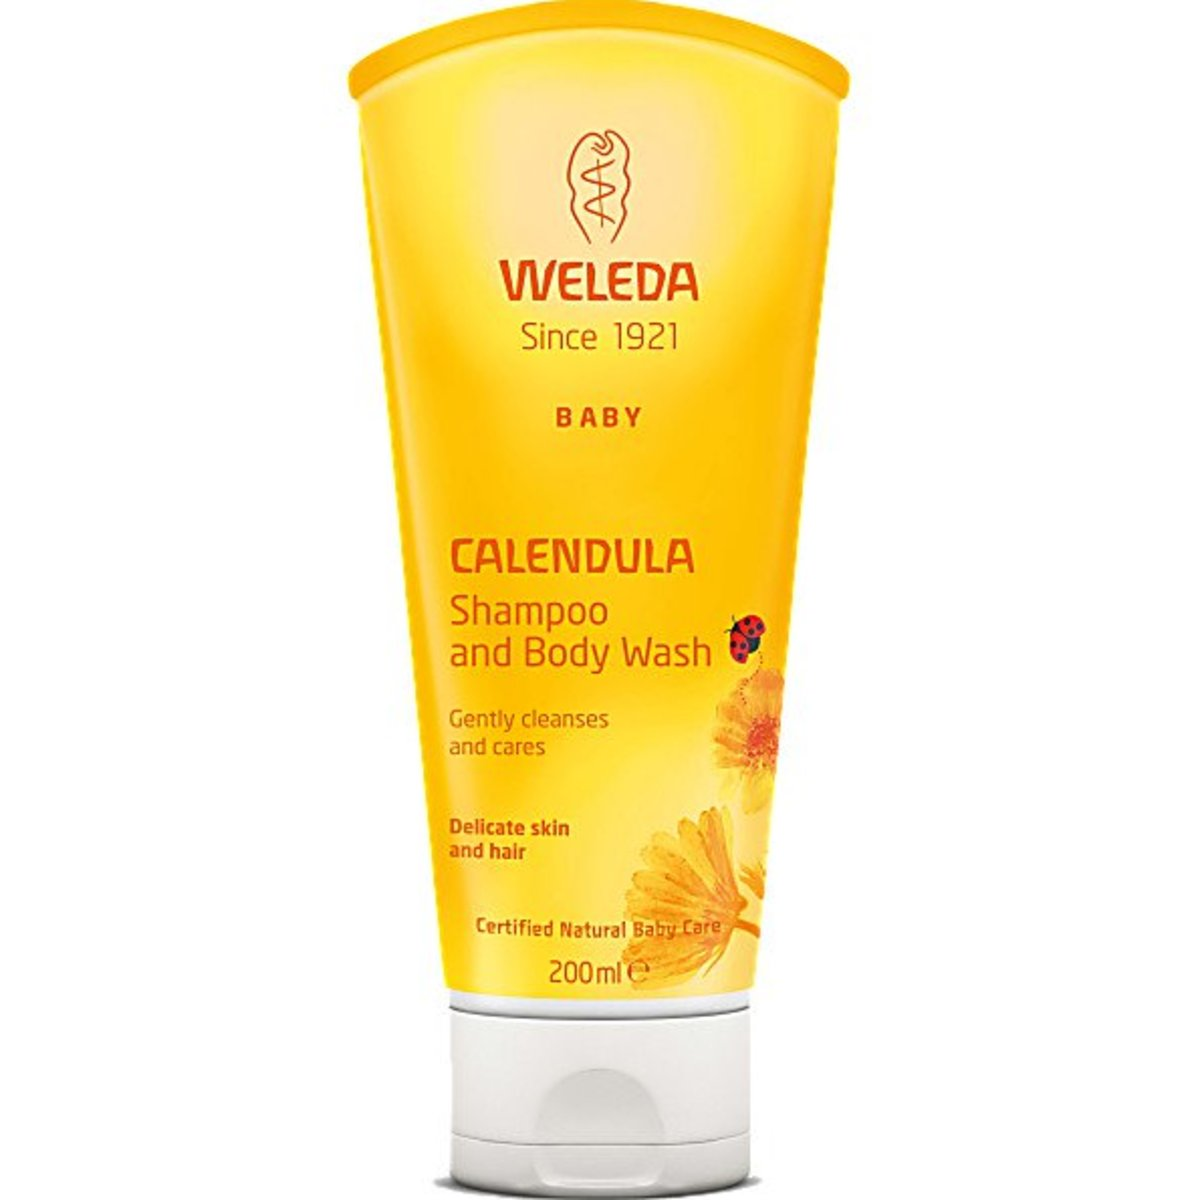 Calendula contains the naturally occurring oil from the herbaceous plants, marigold.